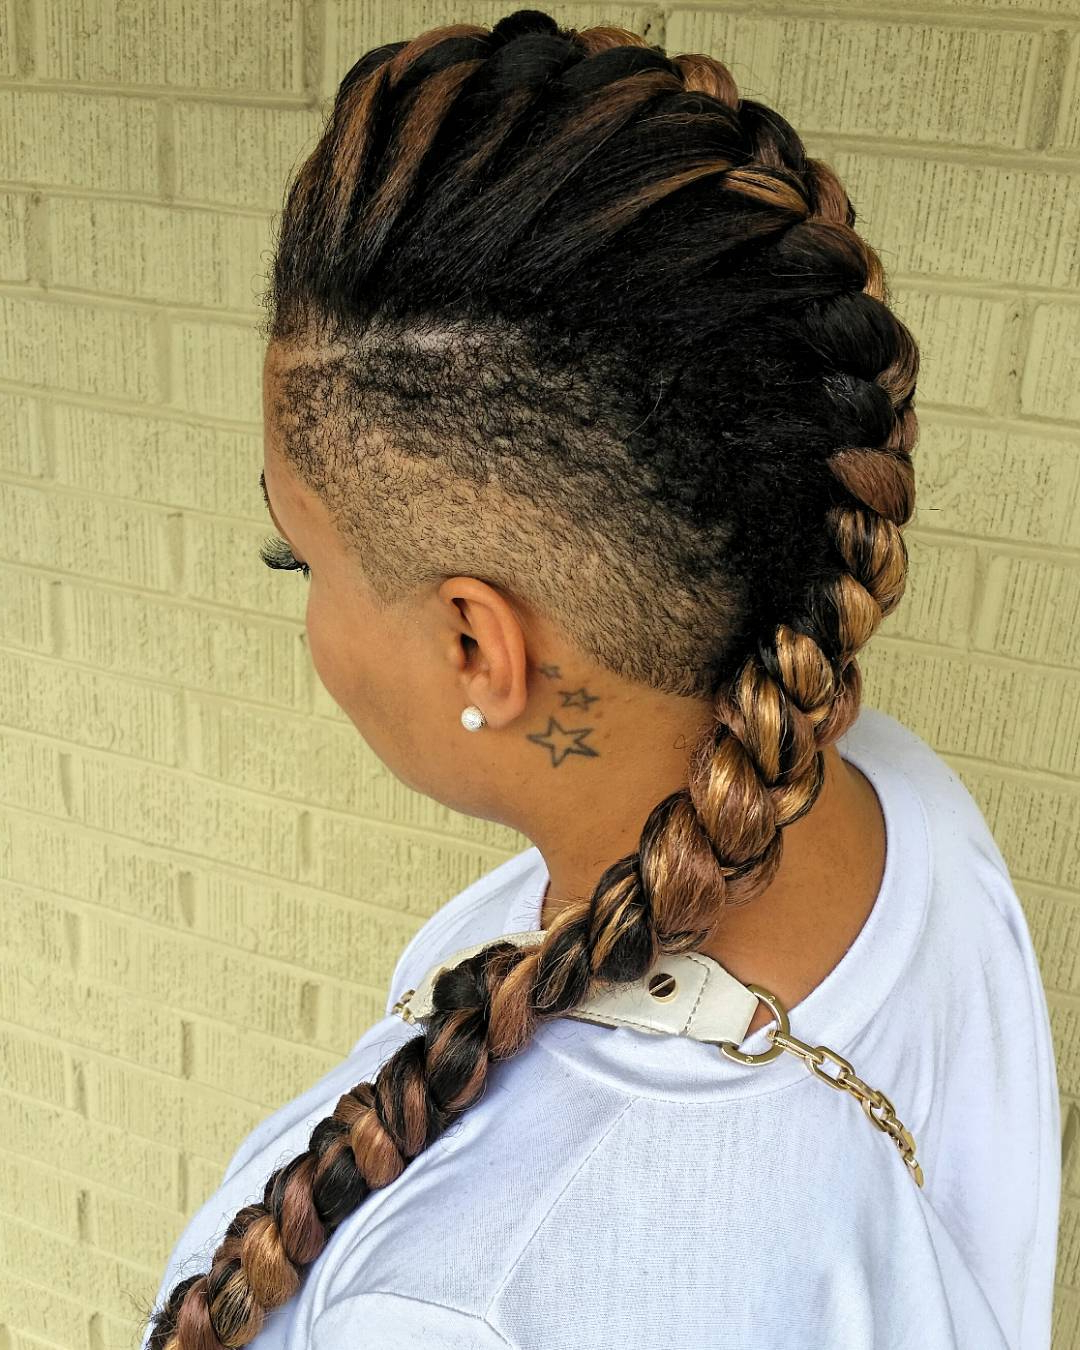 2020 Mohawk Hairstyles With Braided Bantu Knots Pertaining To Mohawk Braids: 12 Braided Mohawk Hairstyles That Get Attention (View 2 of 20)